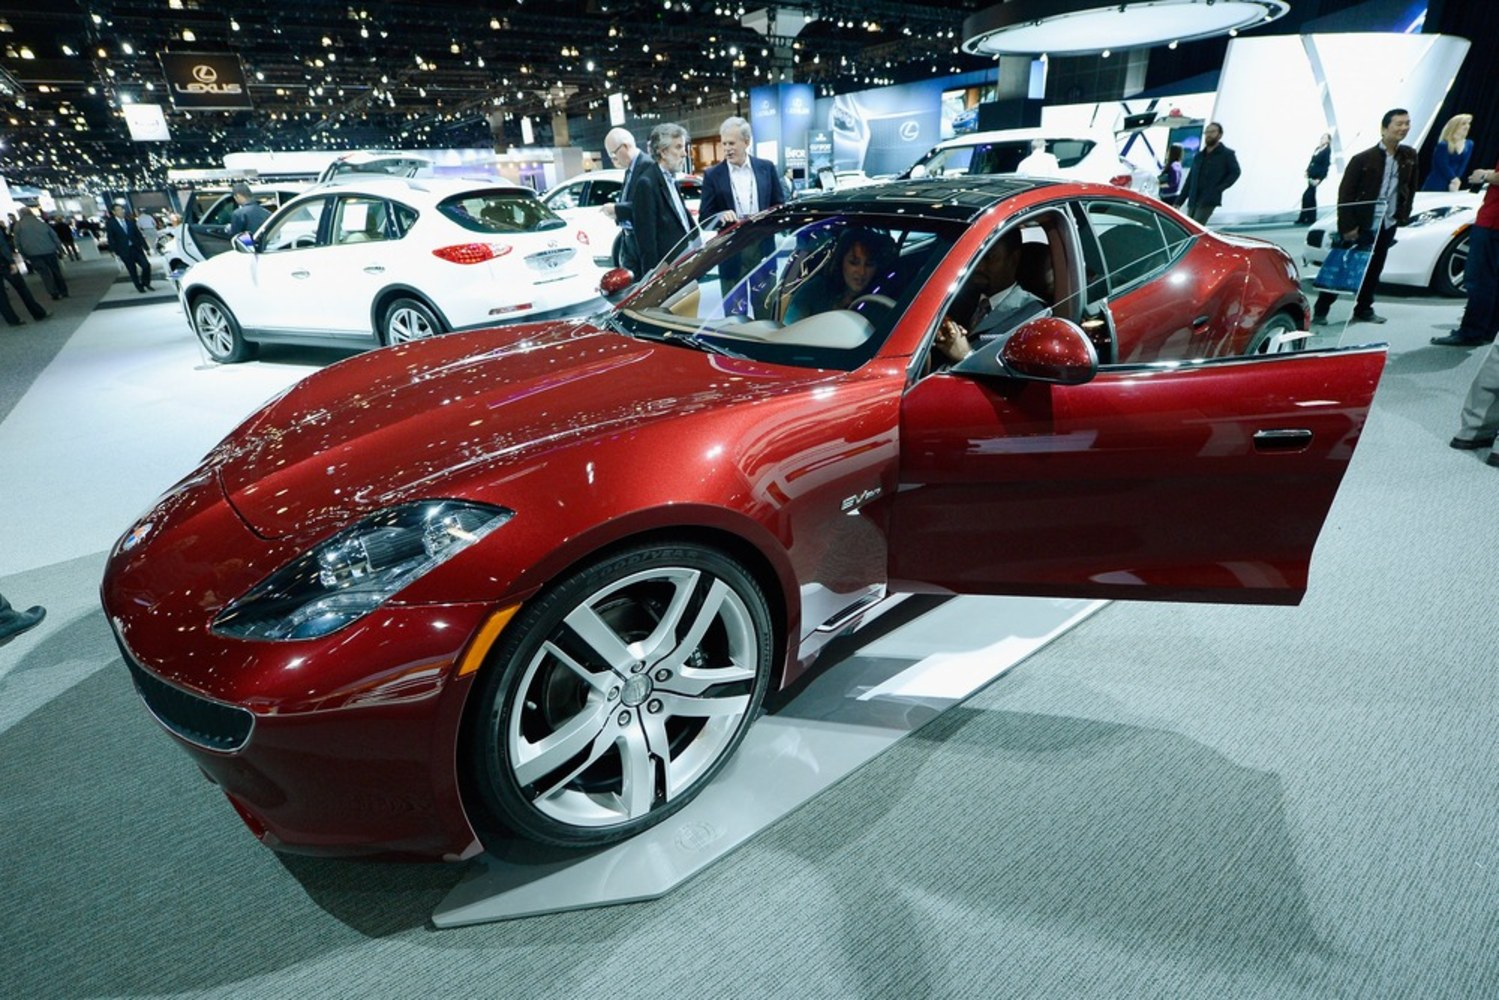 Used Fisker Karma EVs are the 'new Delorean' as prices tumble - NBC News